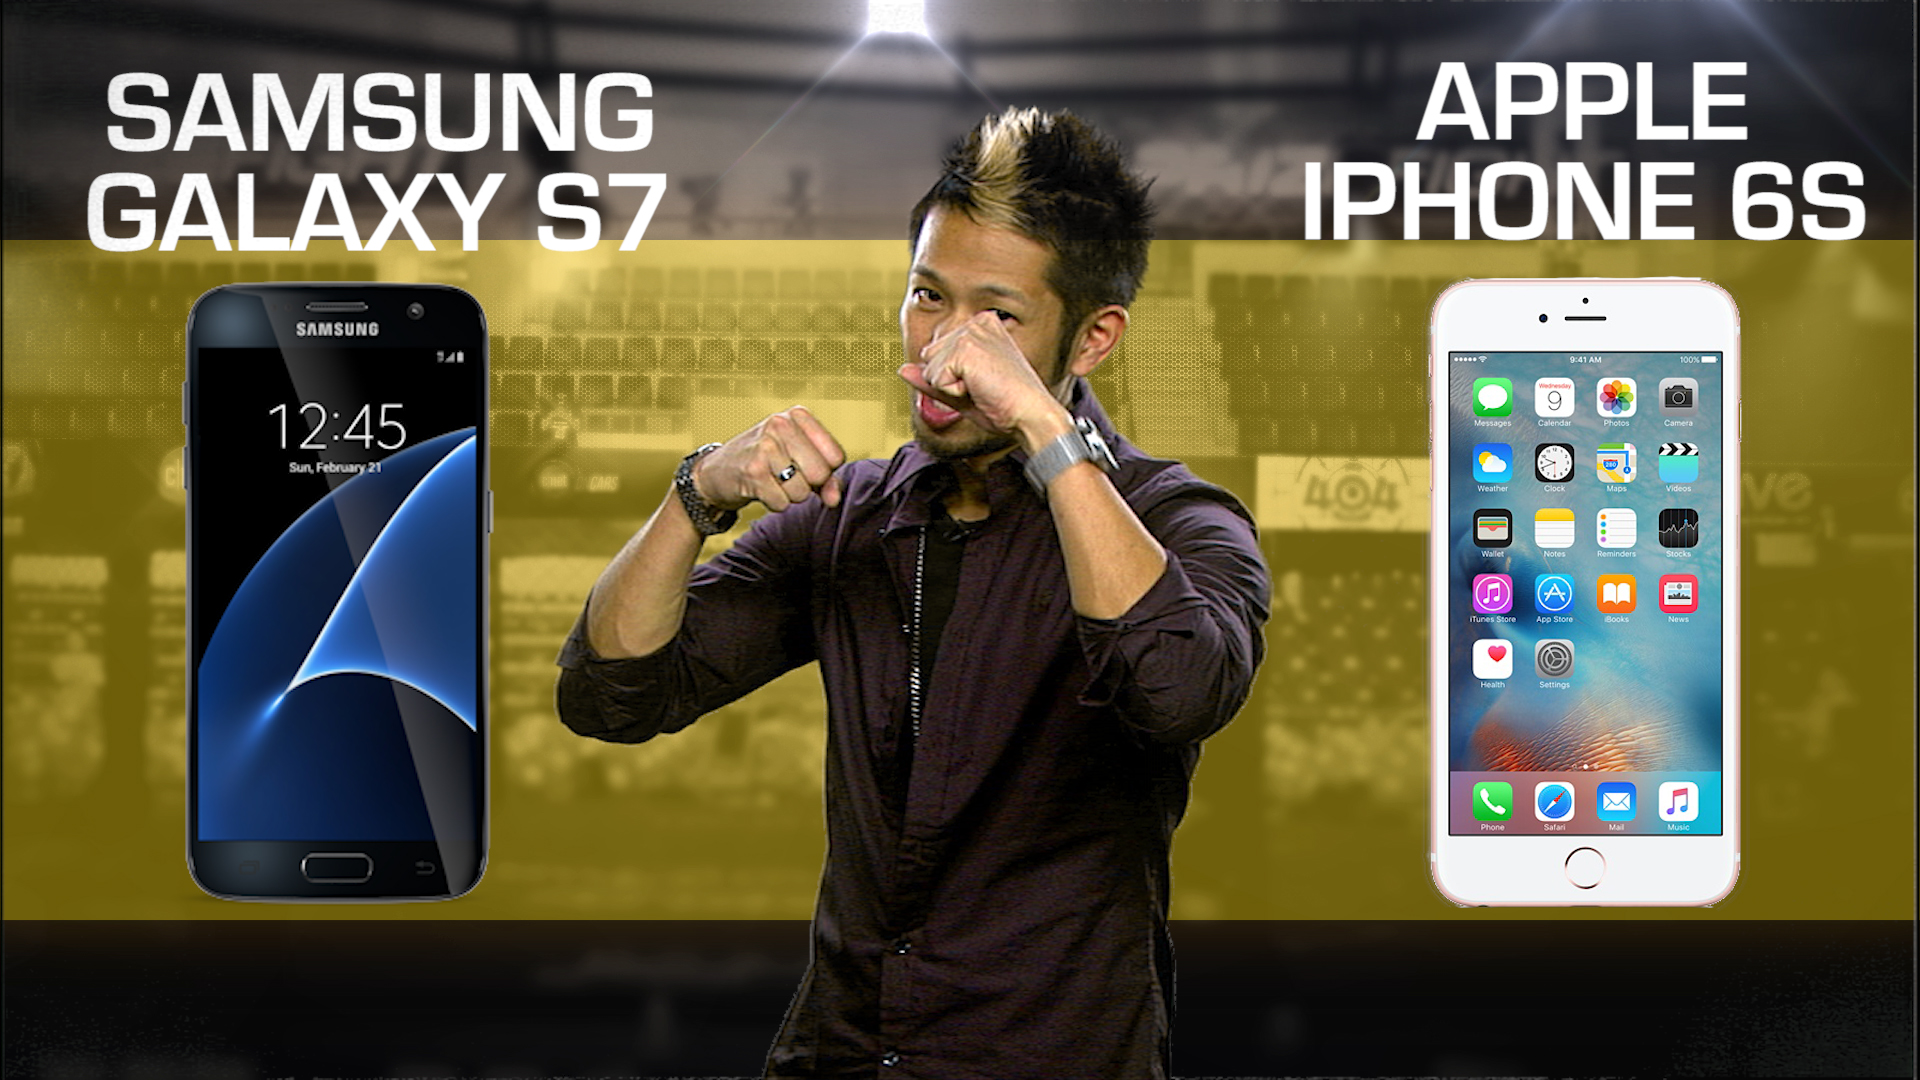 Video: Samsung Galaxy S7 vs. Apple iPhone 6S